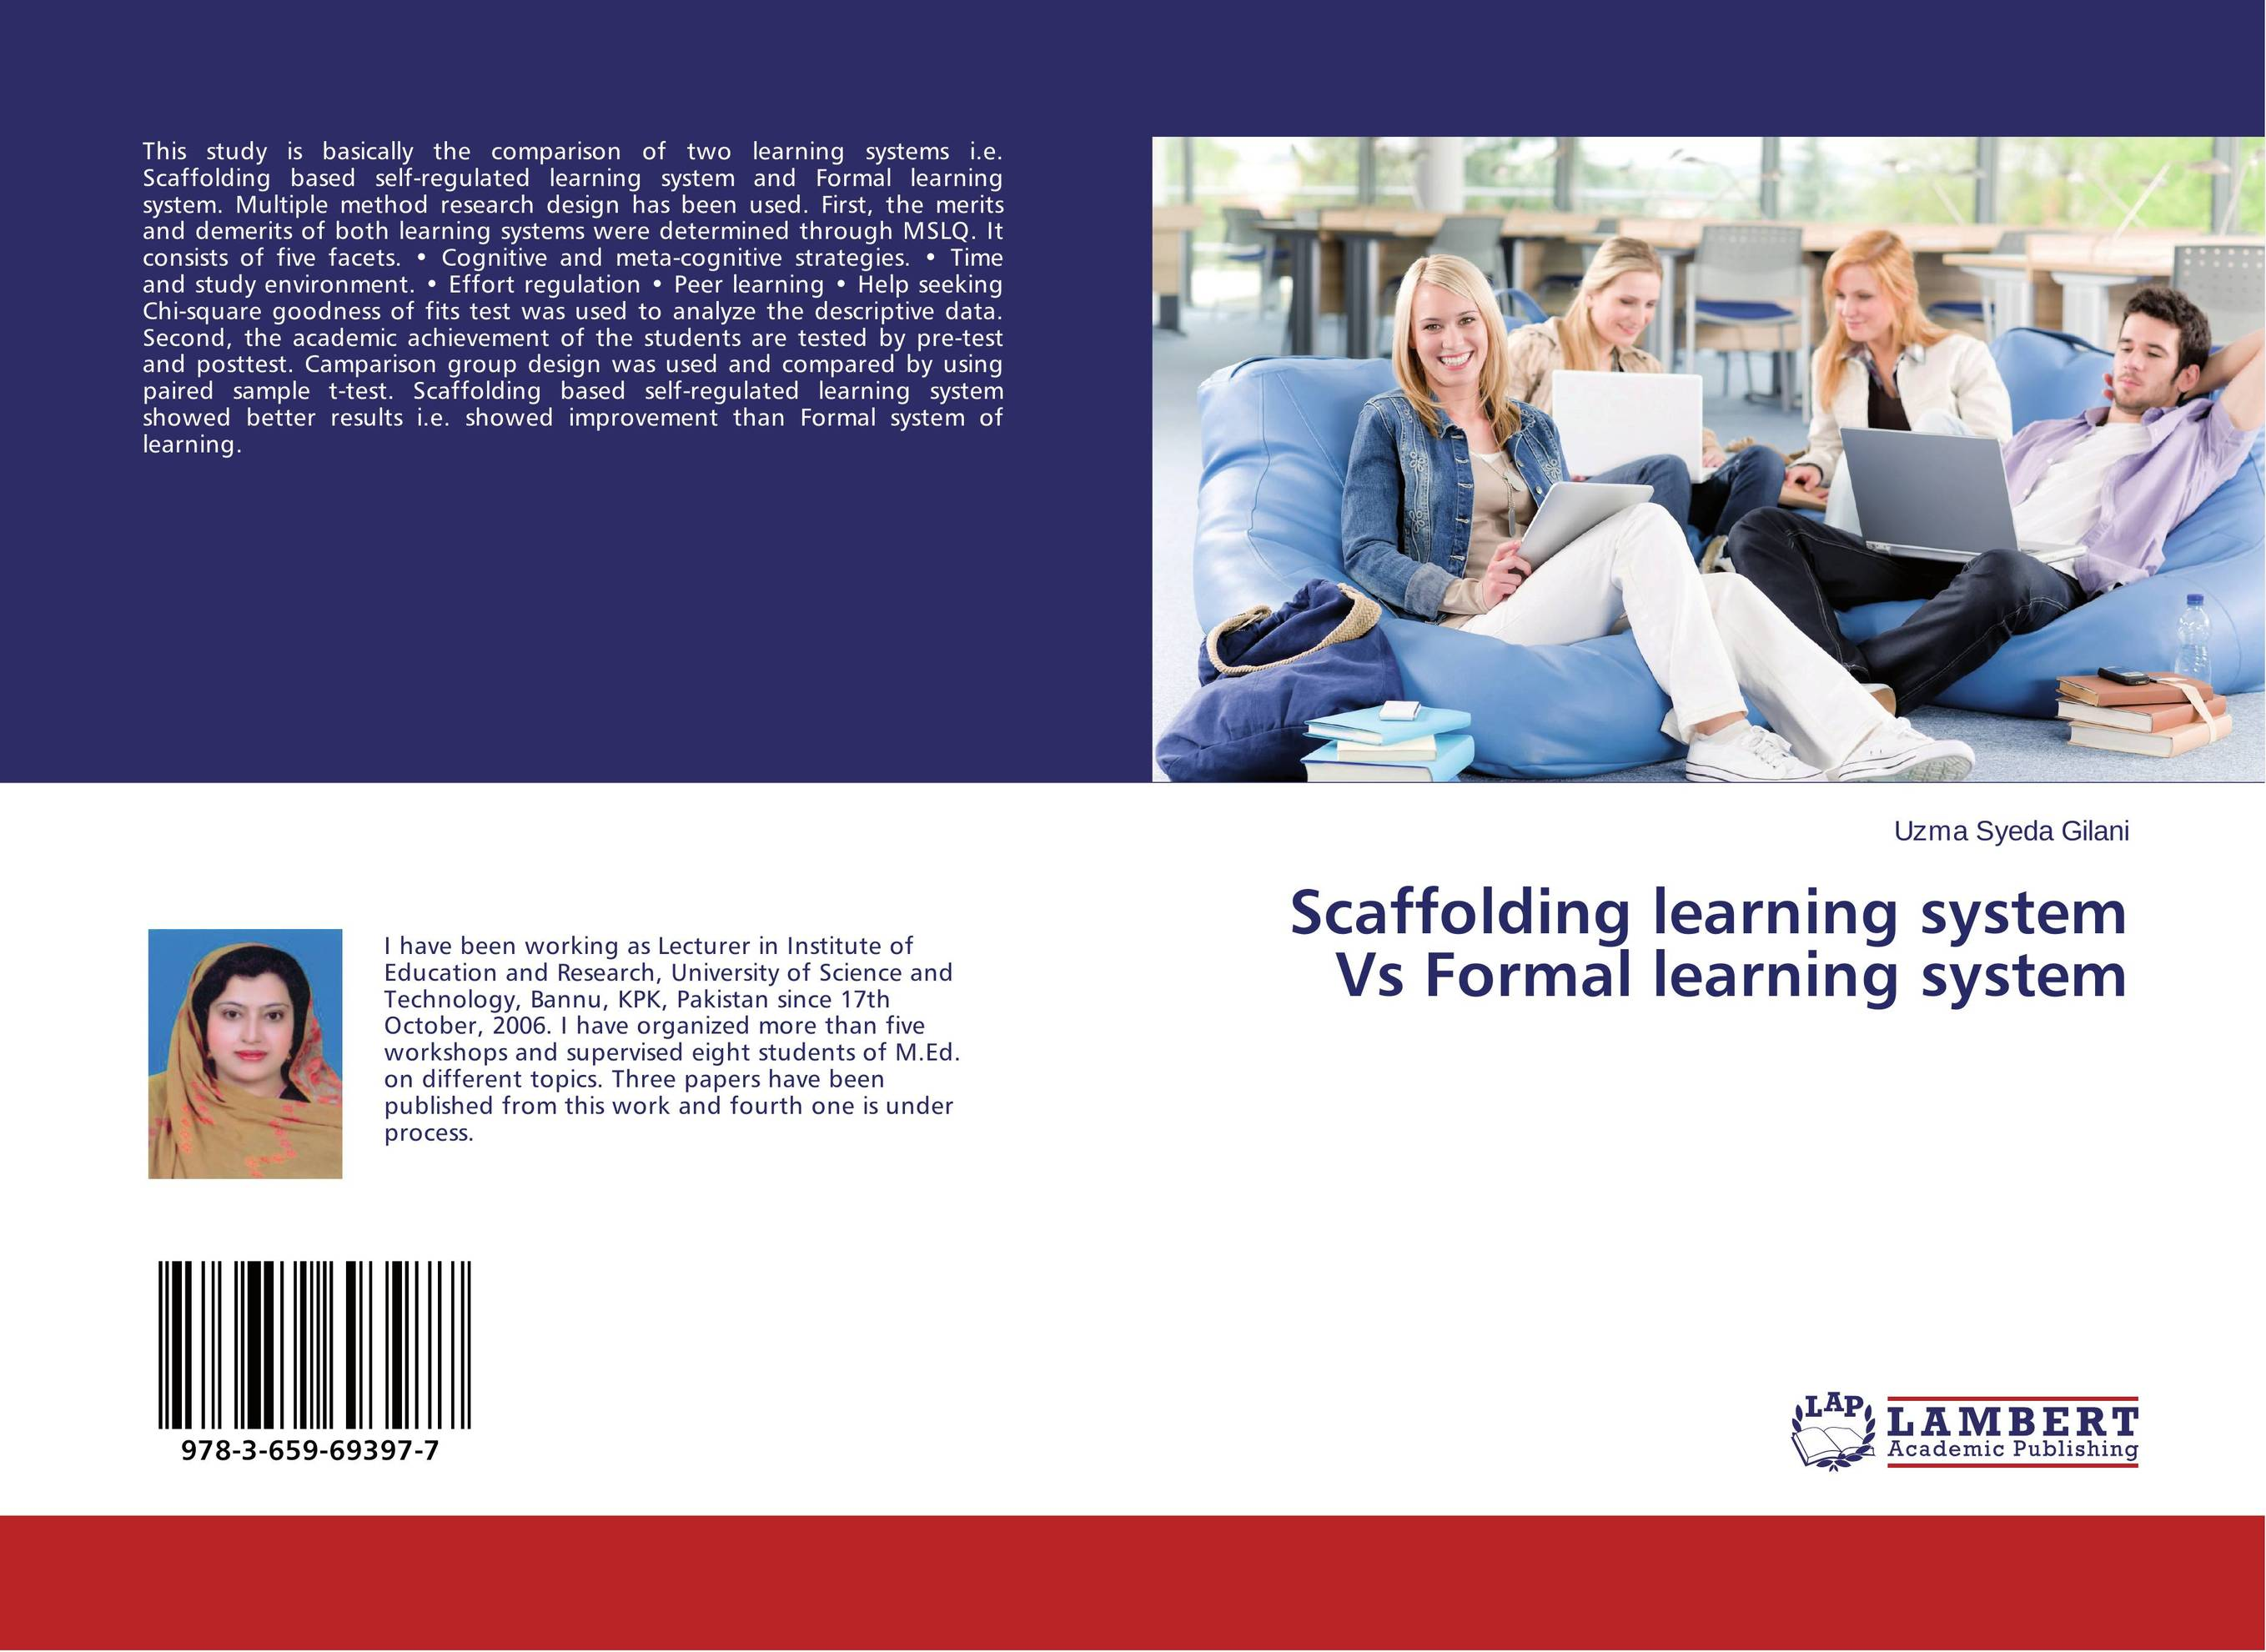 Scaffolding learning system Vs Formal learning system pso based evolutionary learning